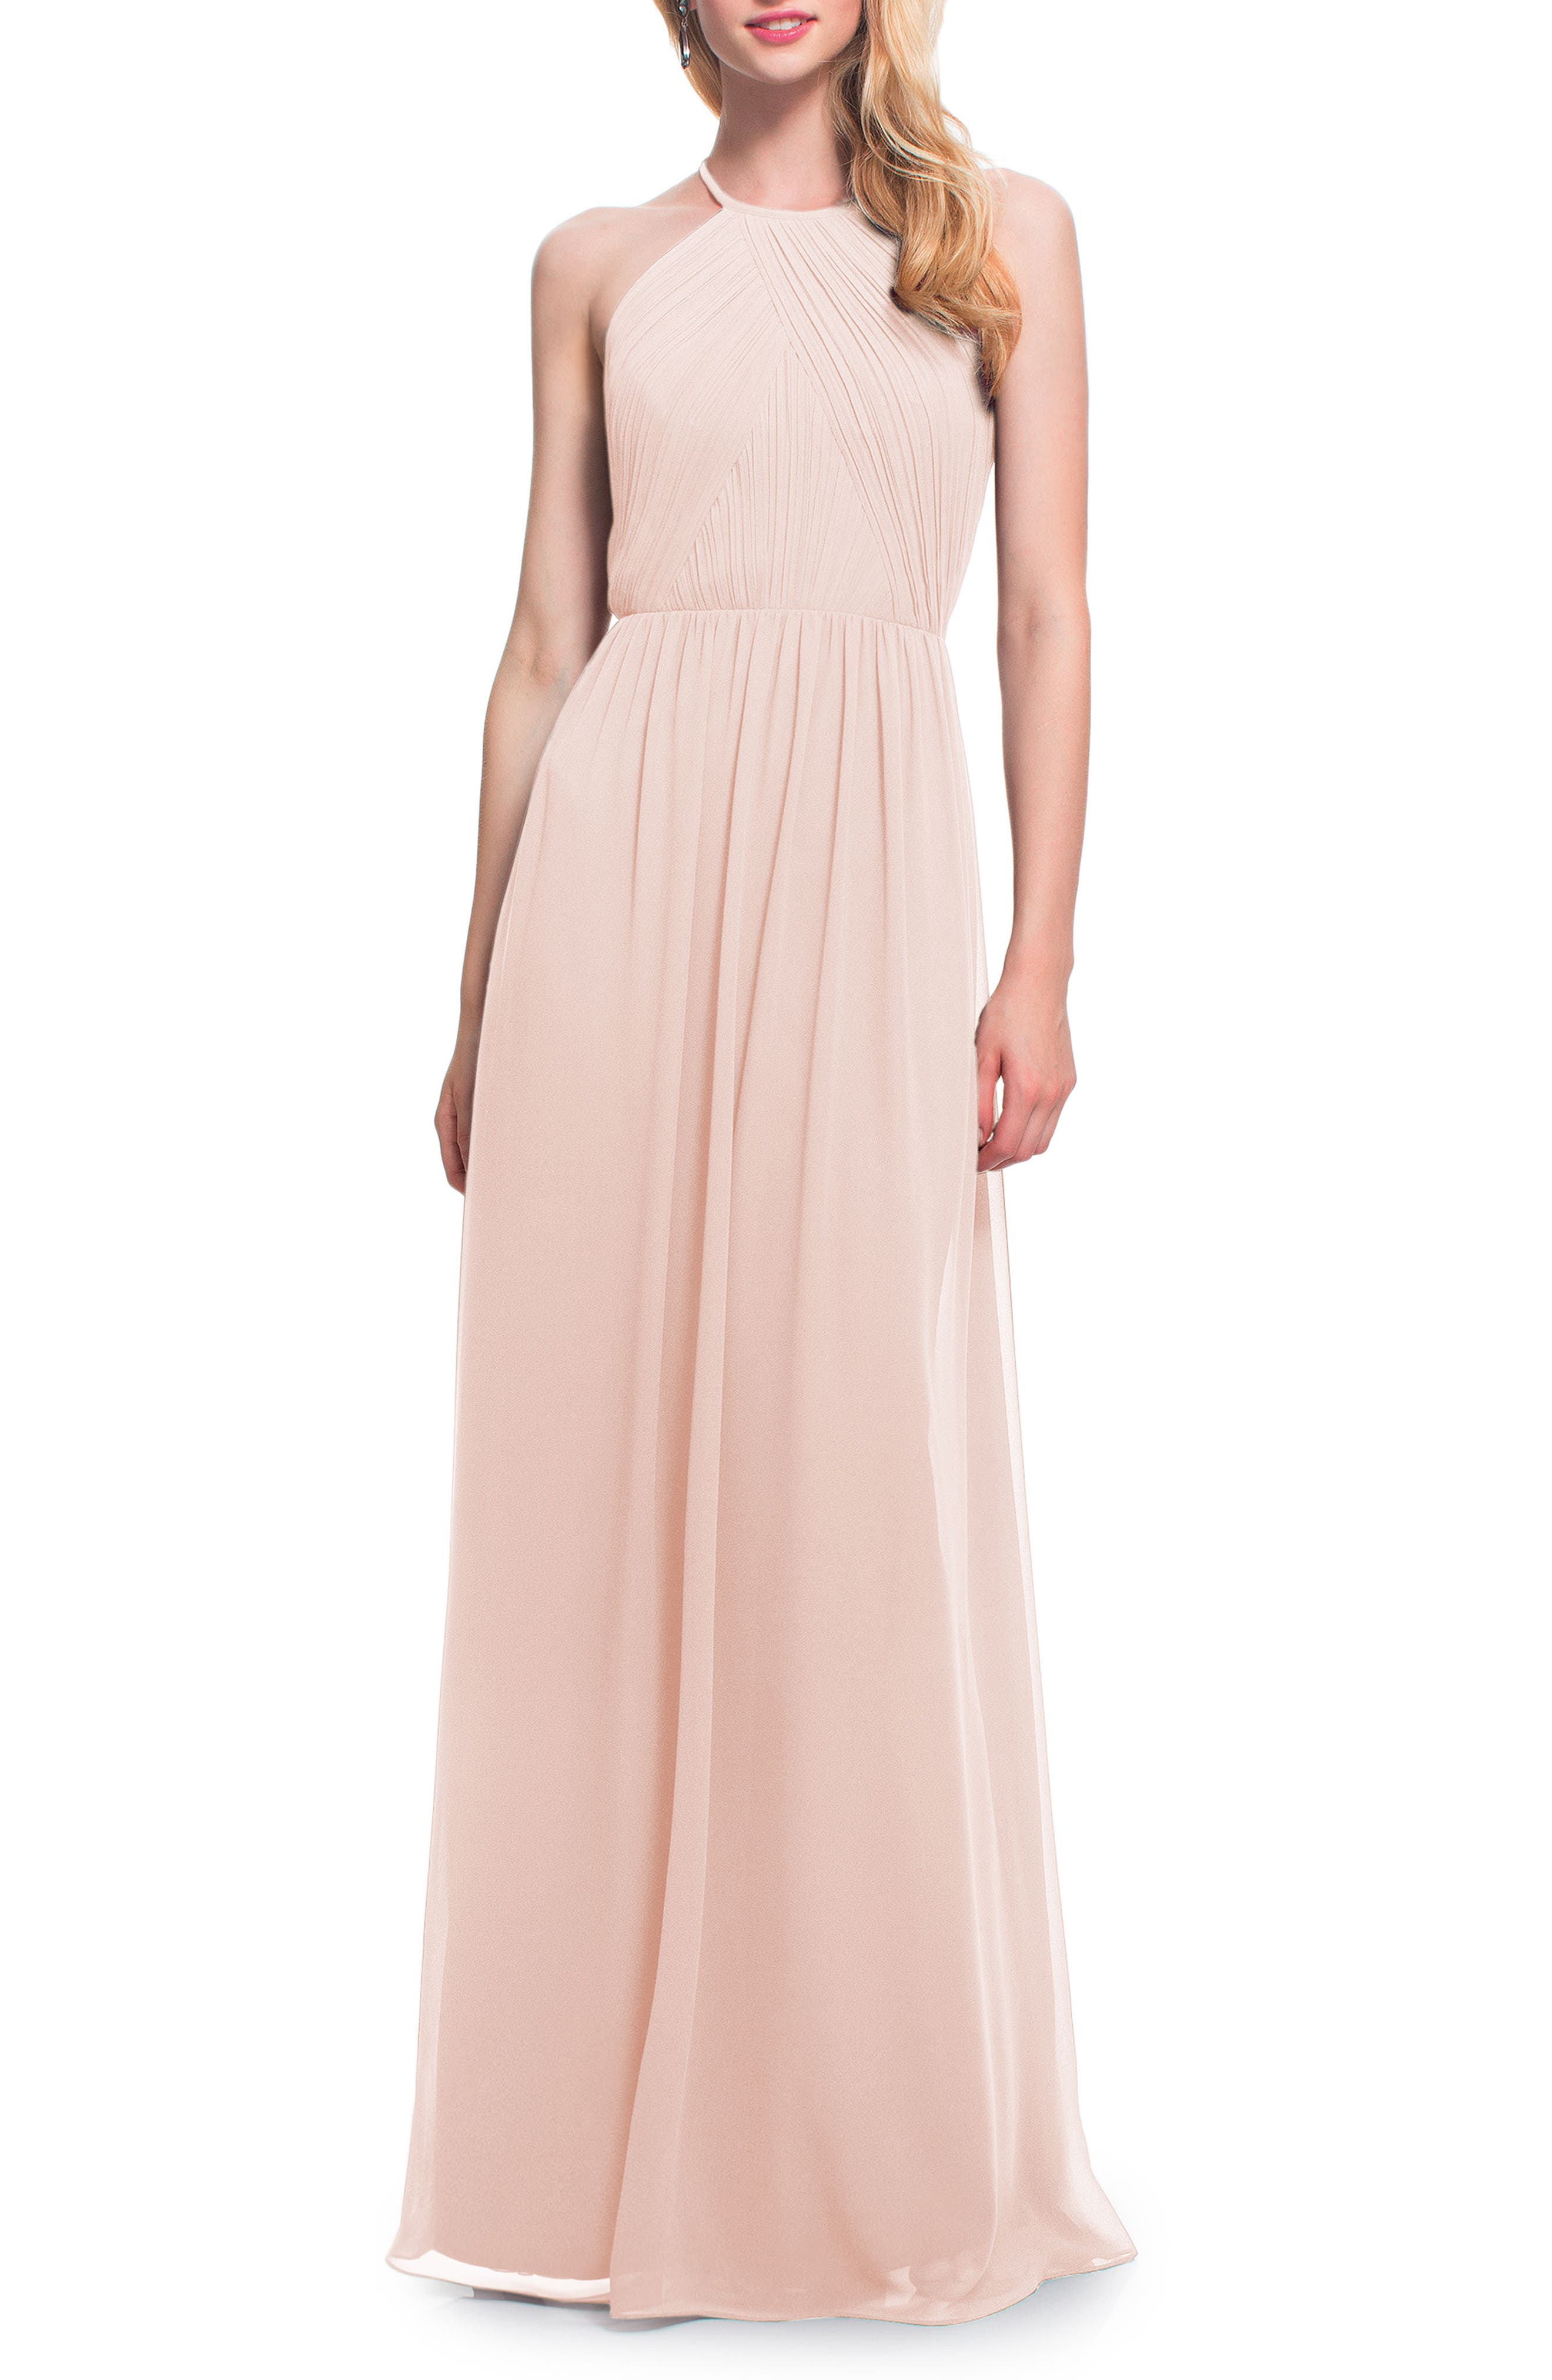 Main Image - #Levkoff Open Back Halter Neck Chiffon Gown